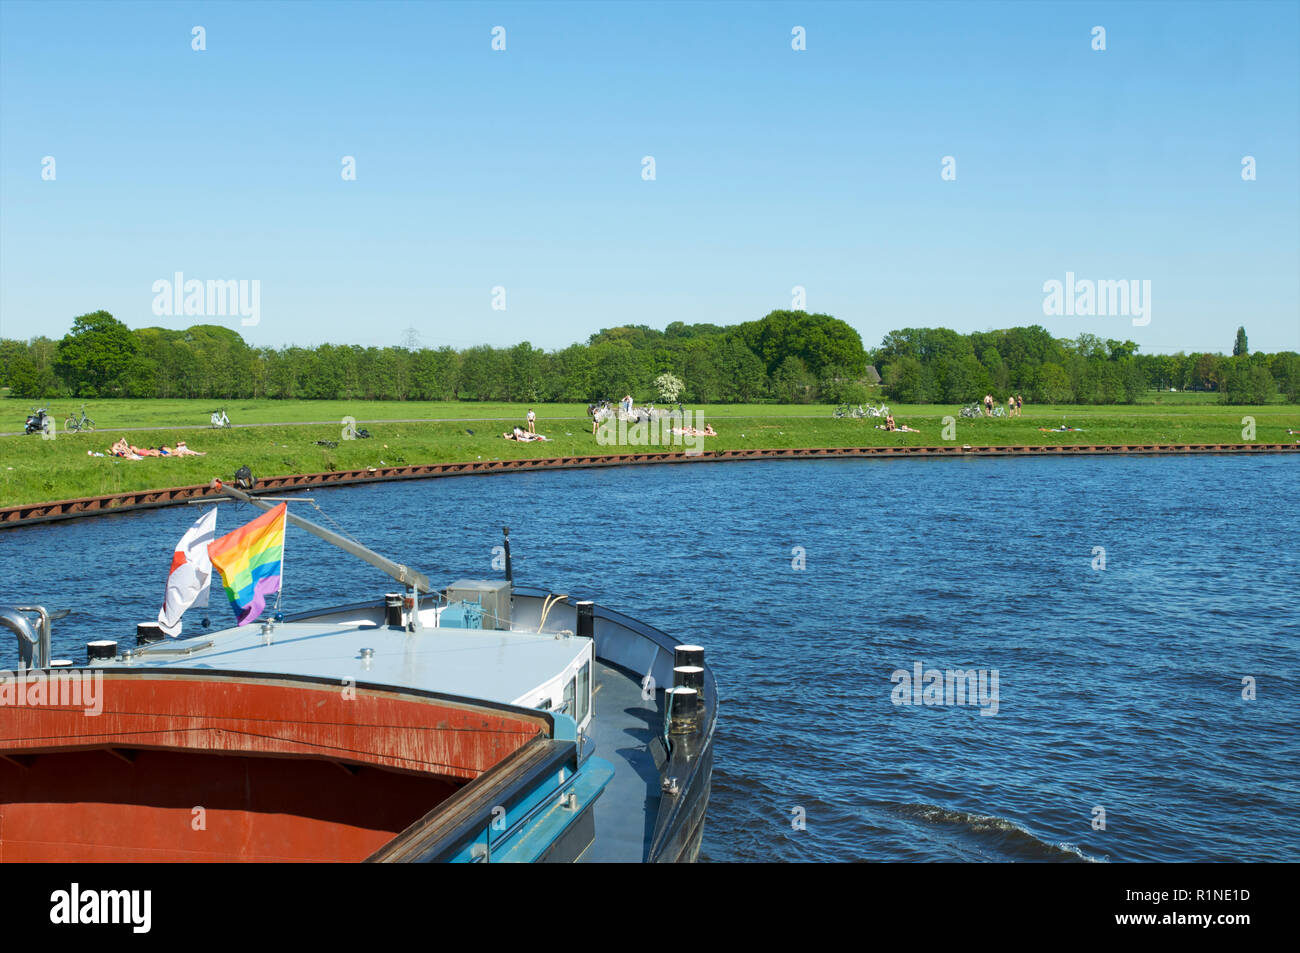 An empty freight ship with rainbow flag sailing over the canal de Eem passing people sunbathing an recreating at the water, the Netherlands - Stock Image